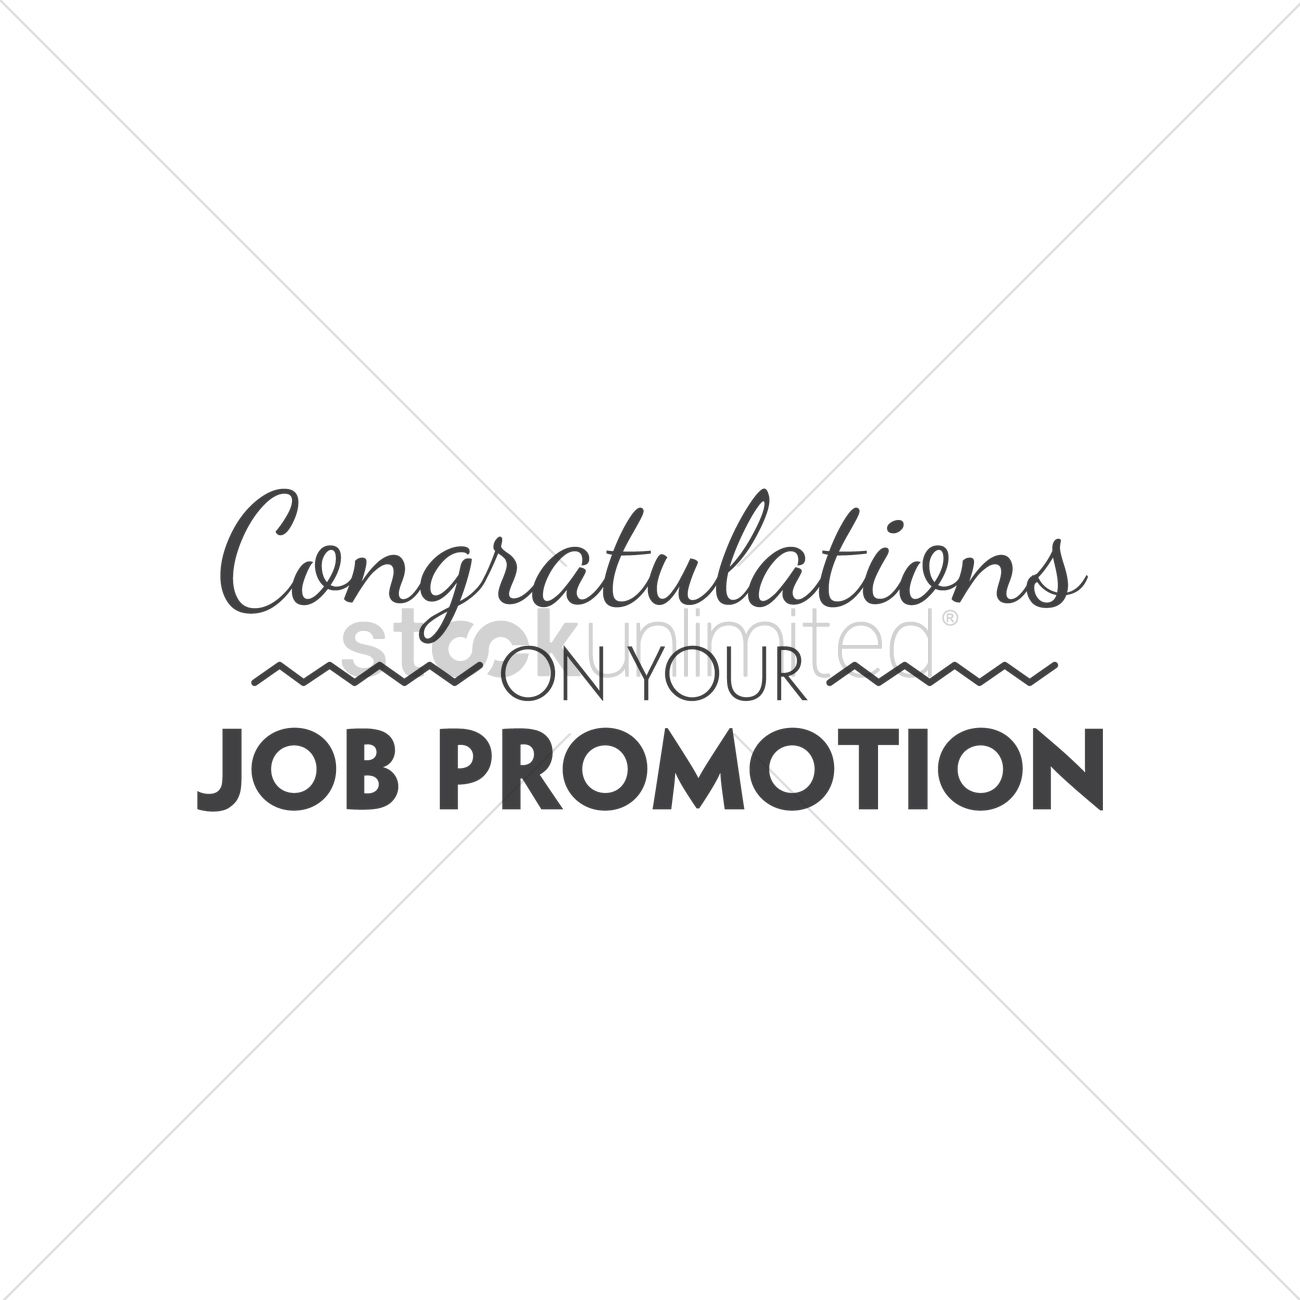 Congratulations on your job promotion Vector Image